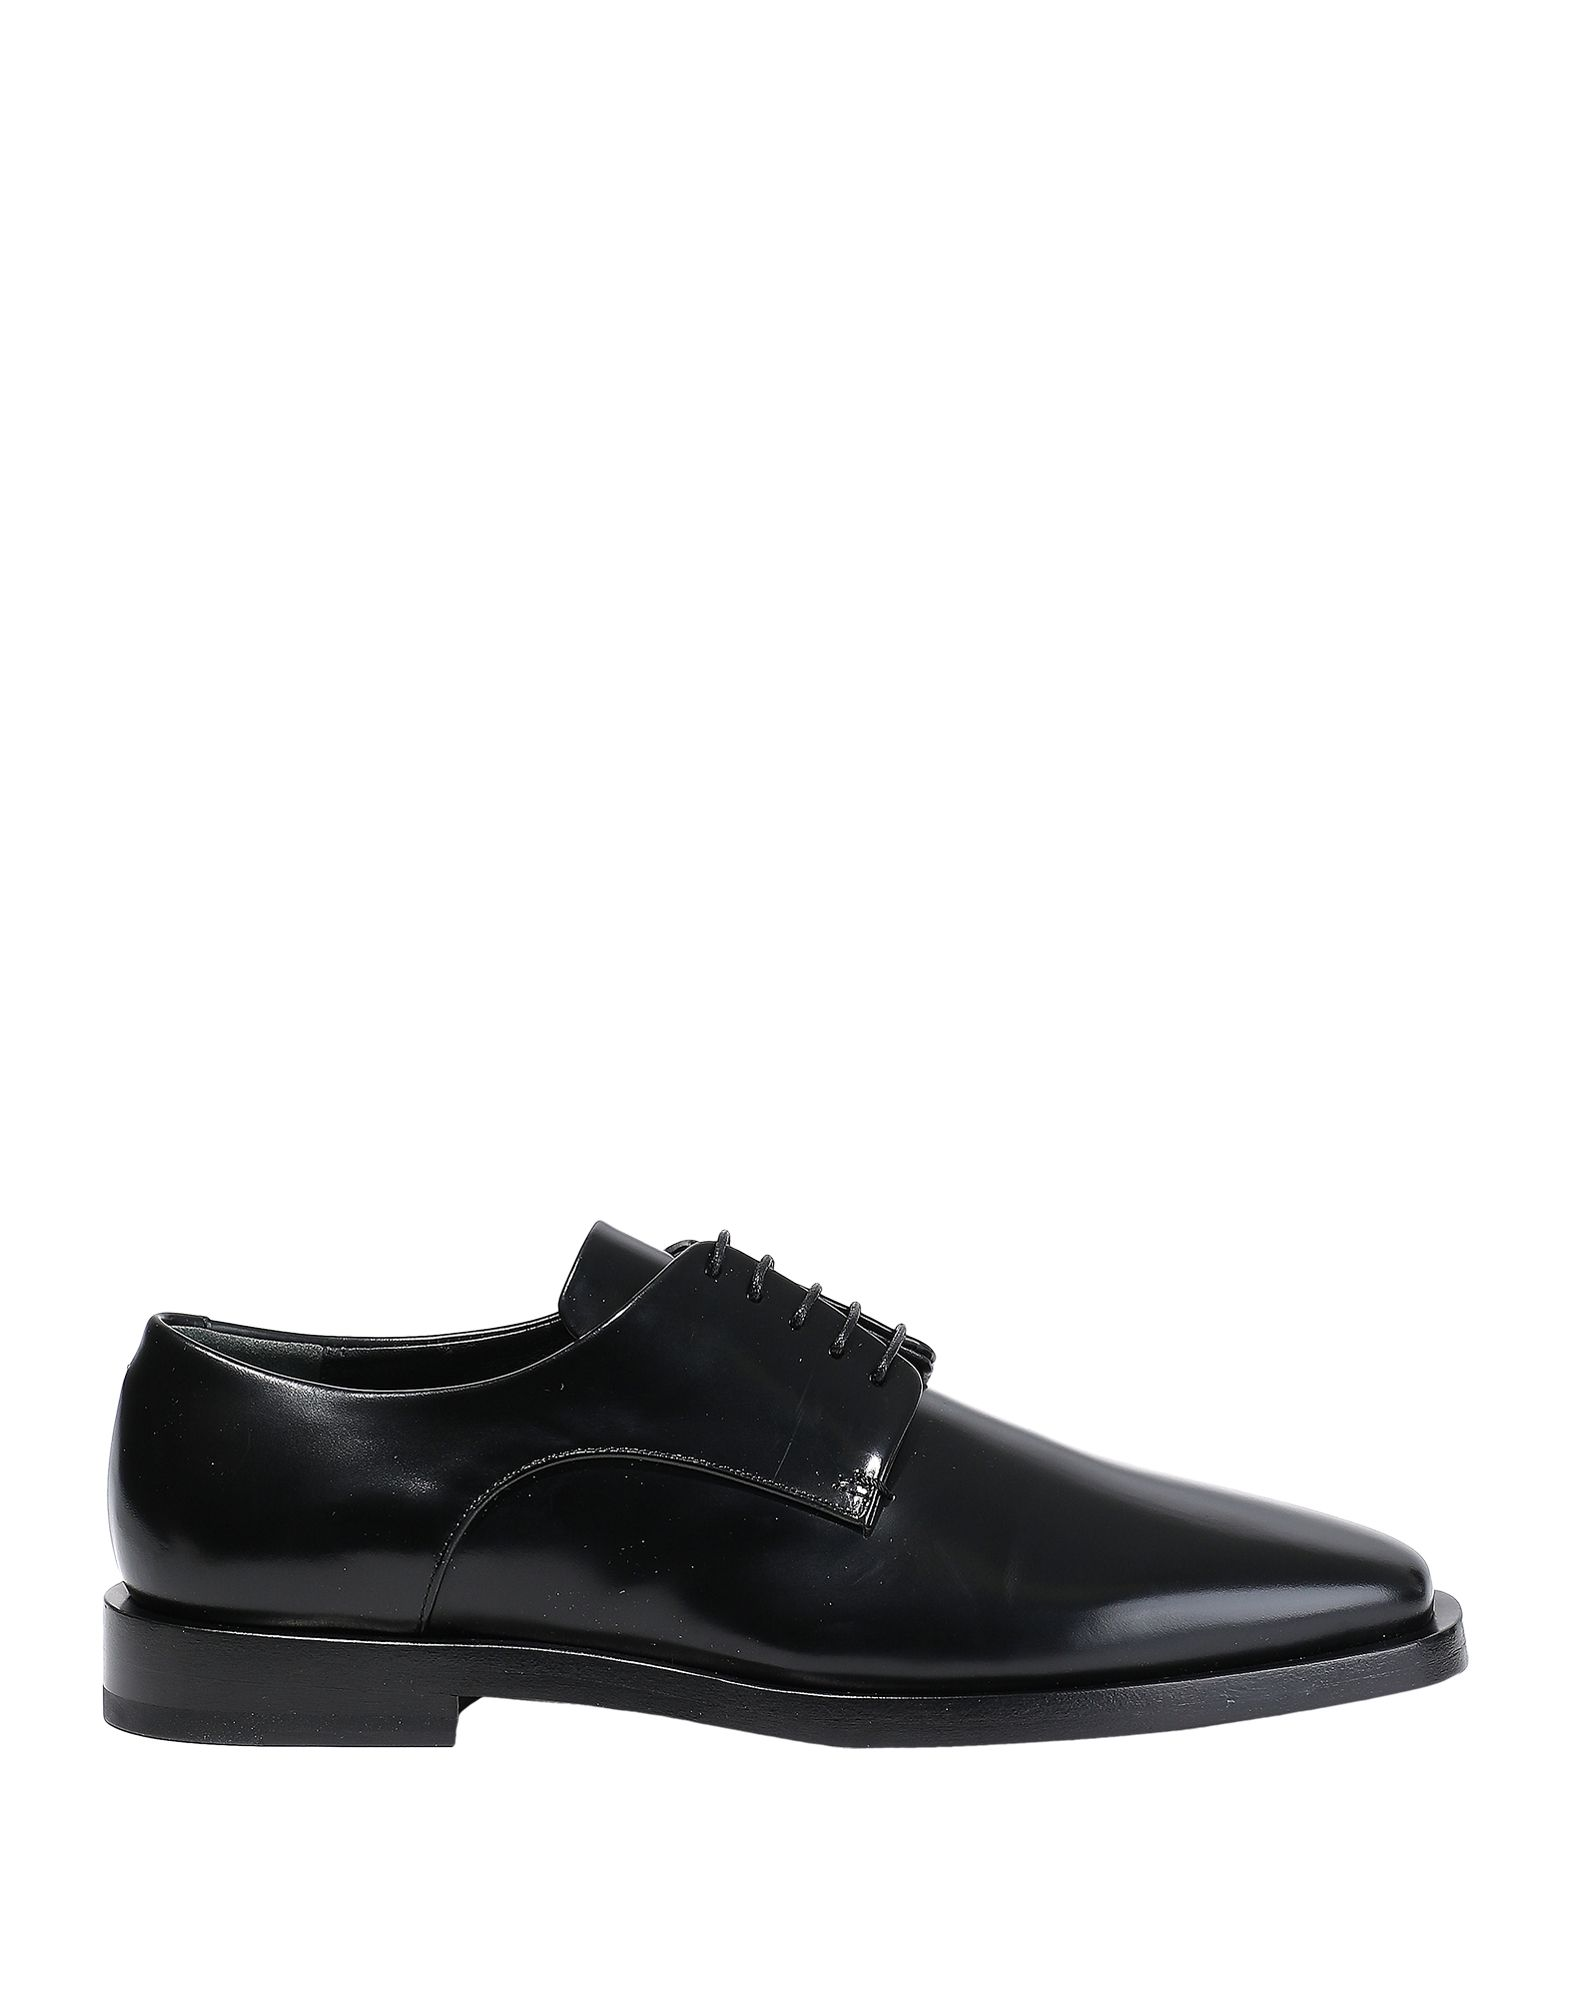 JIL SANDER Lace-up shoes. no appliqués, solid color, square toeline, square heel, leather lining, leather sole, contains non-textile parts of animal origin. Soft Leather